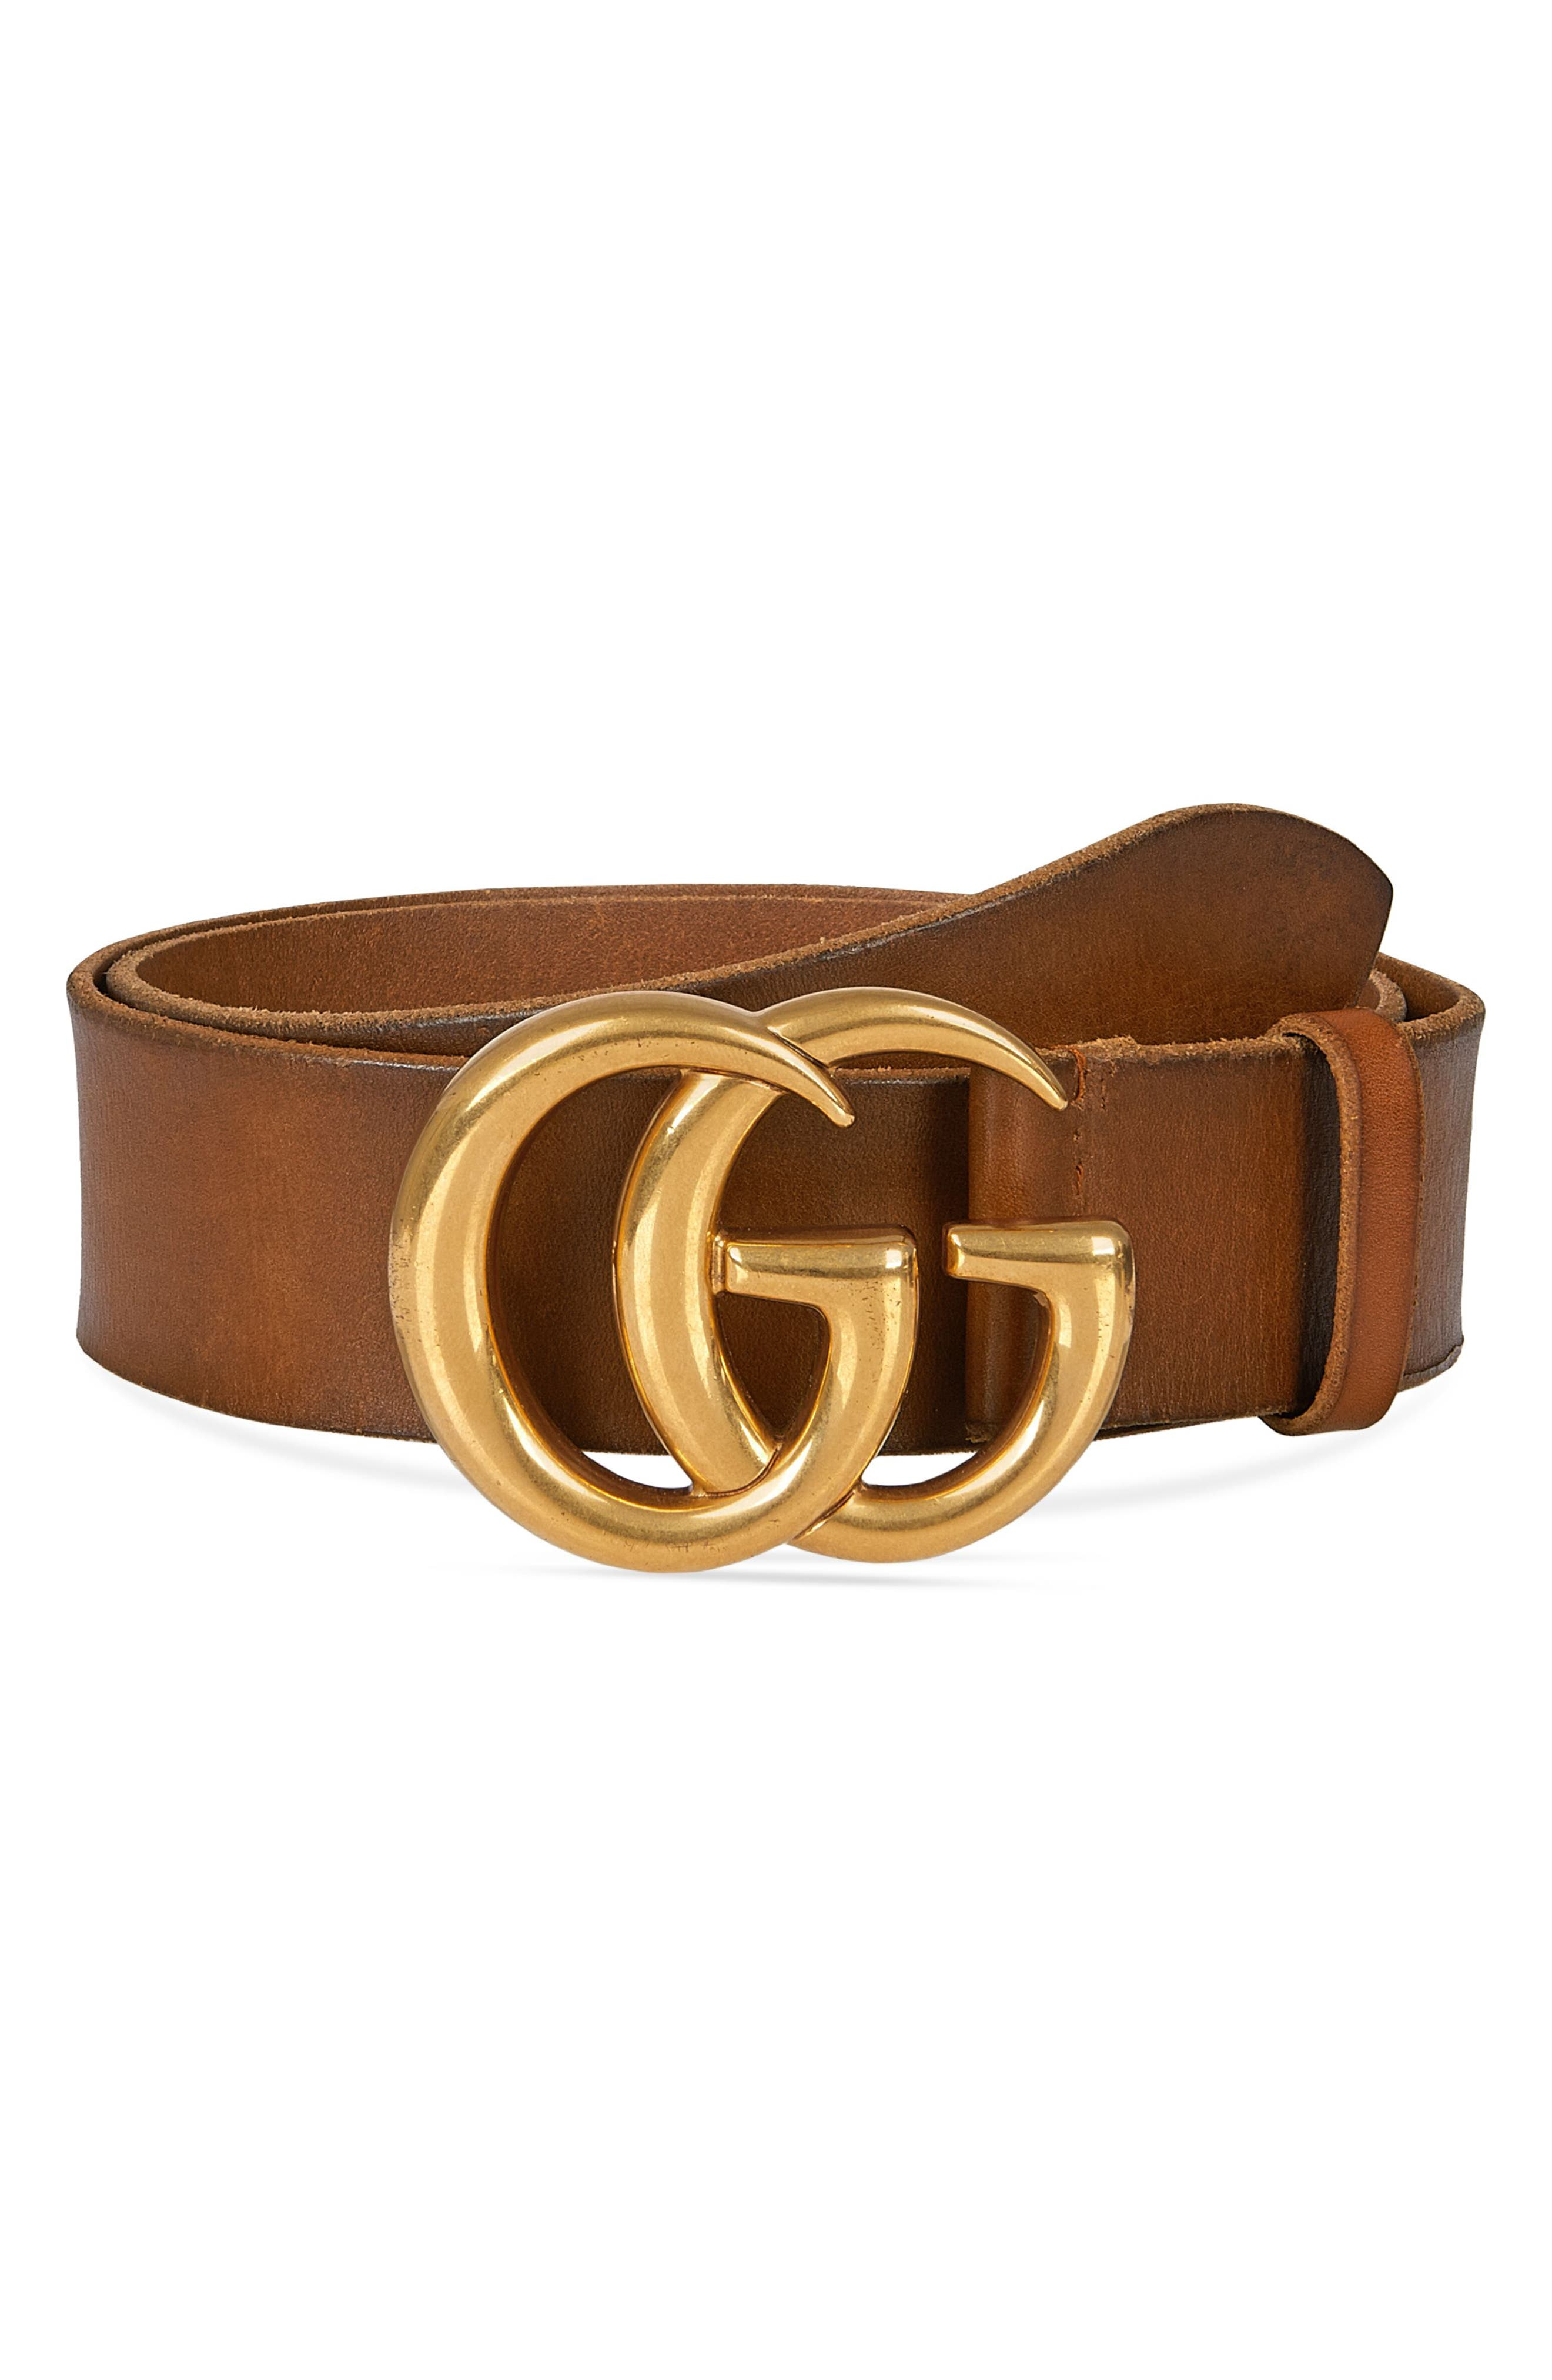 Distressed Leather Belt,                             Main thumbnail 1, color,                             Light Brown